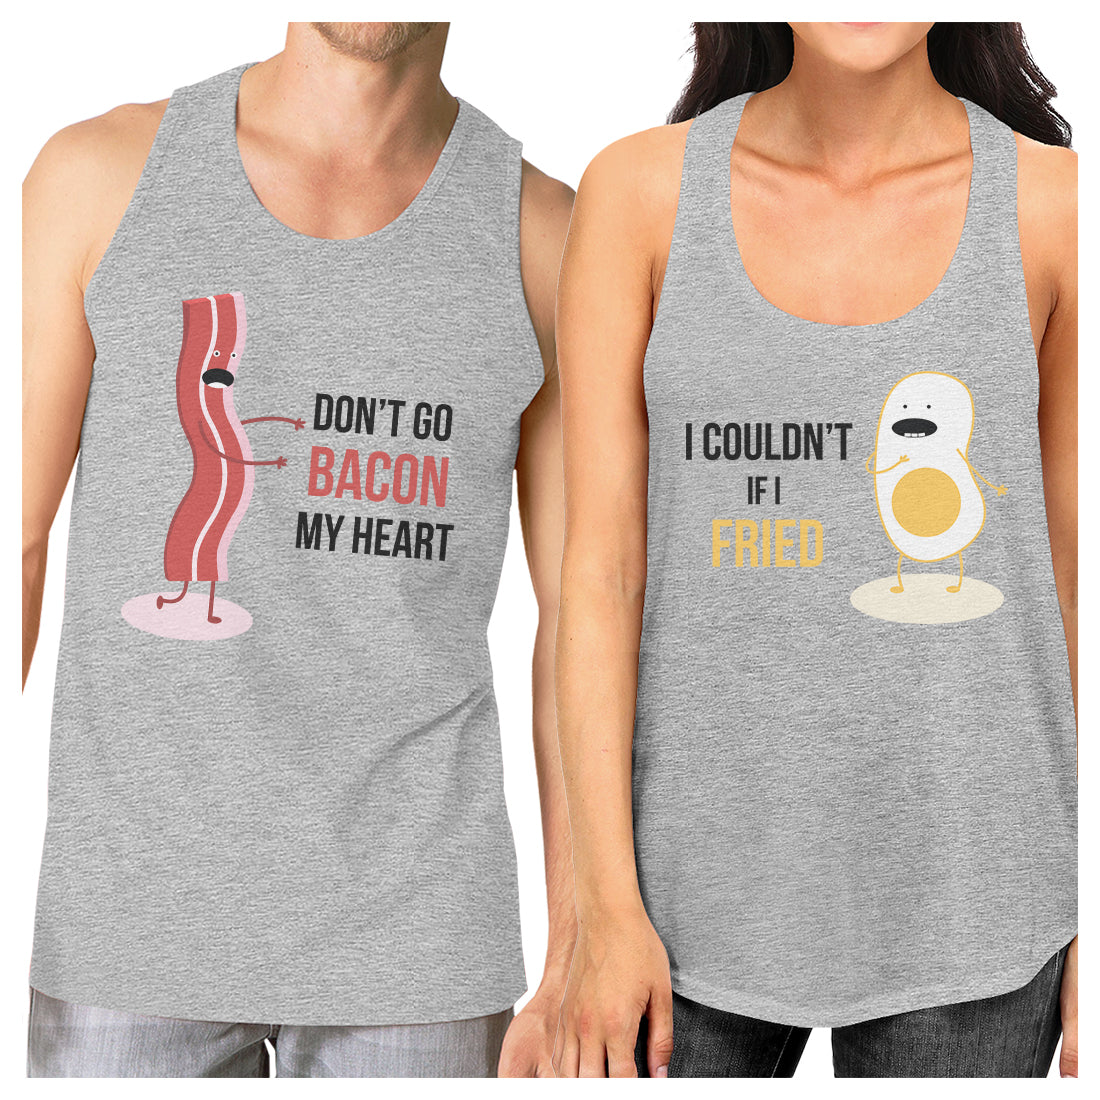 Dont Go Bacon My Heart Funny Food Clothing Gift Hilarious Womens T-Shirts